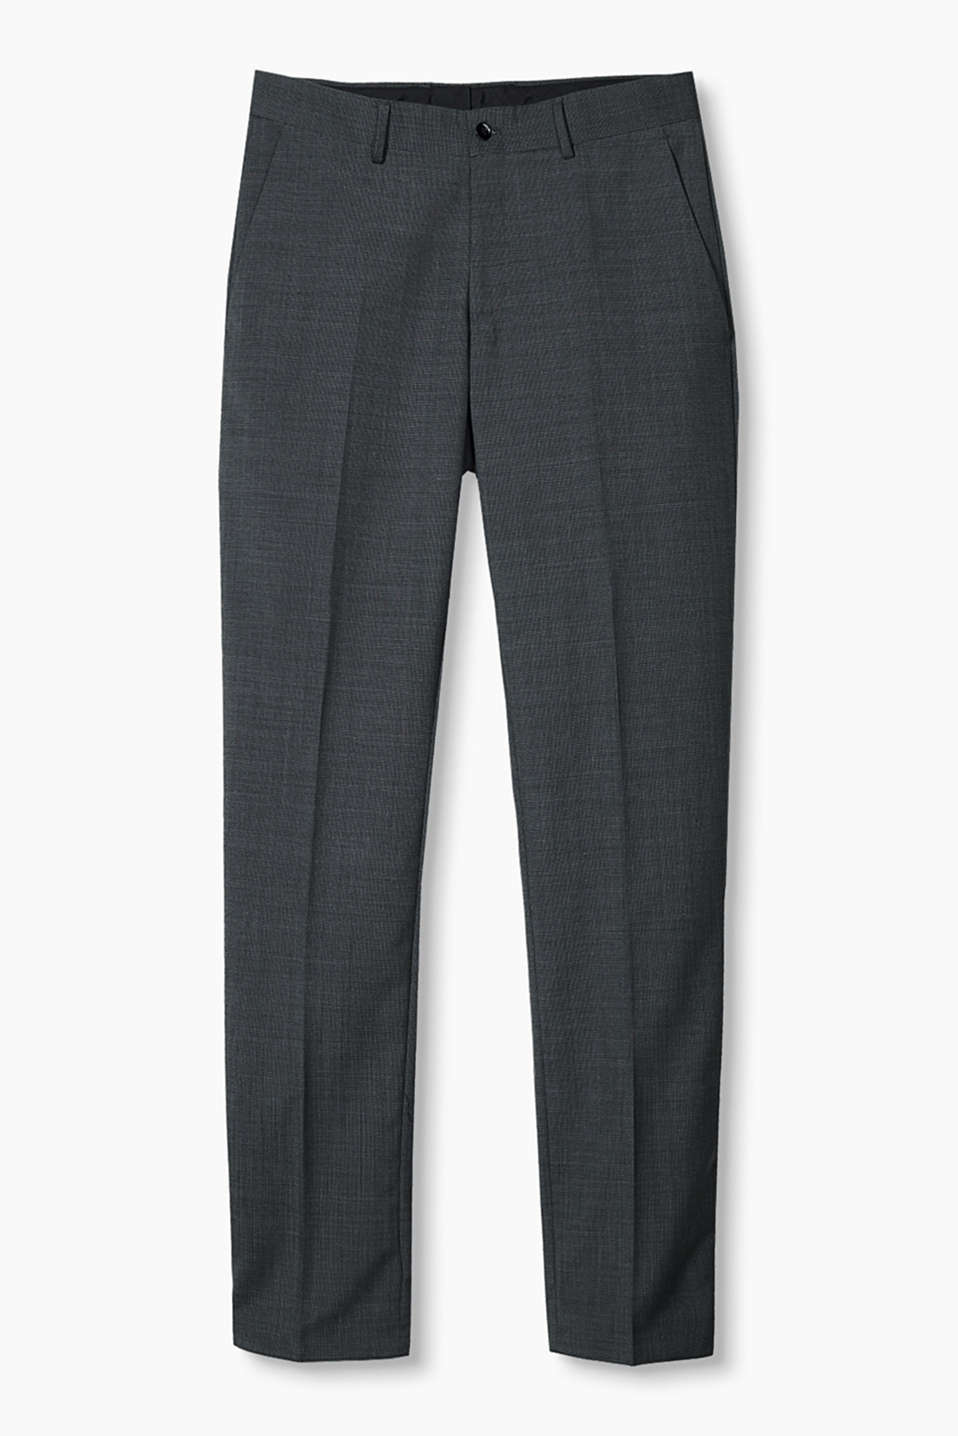 Pants suit Extra Slim fit, DARK GREY 5, detail image number 7